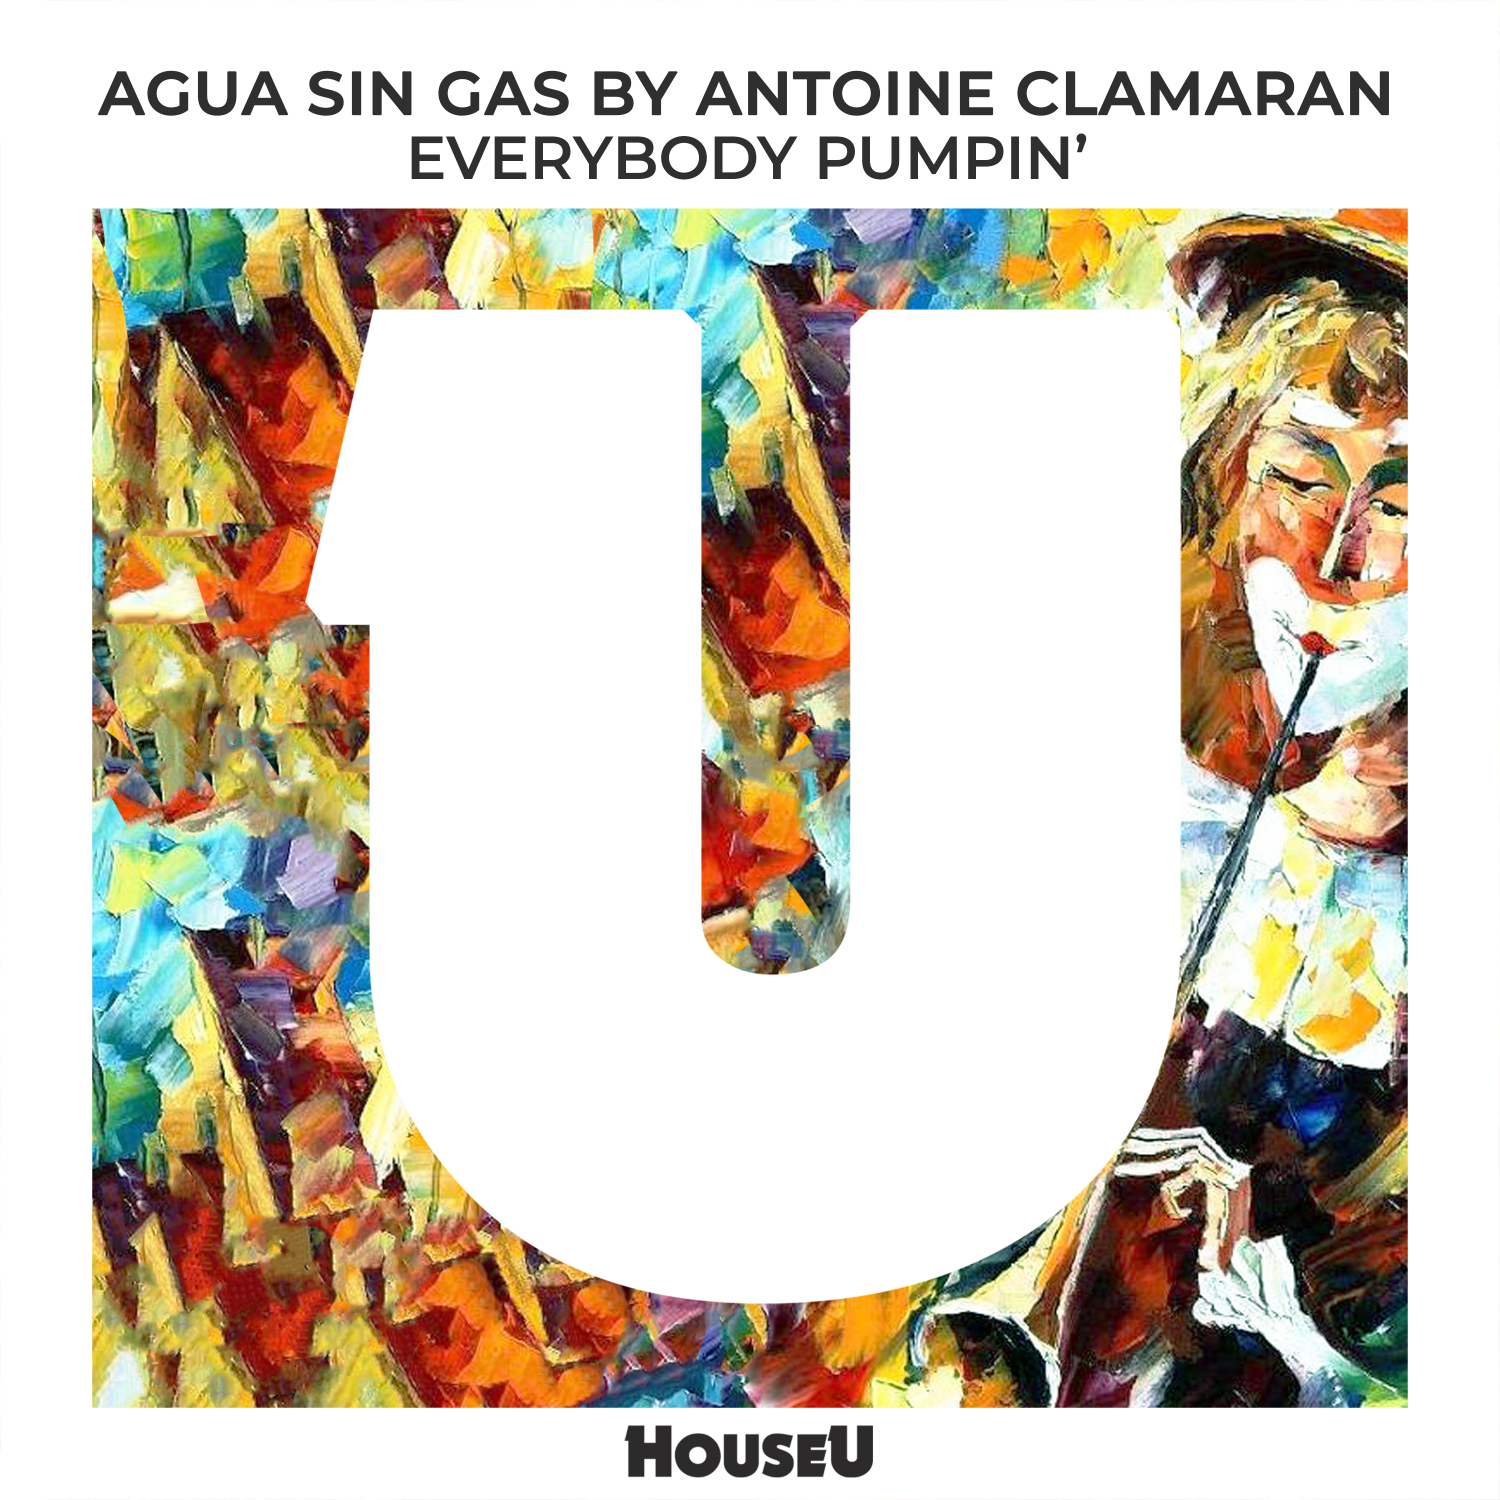 Agua Sin Gas & Antoine Clamaran - Everybody Pumpin\' (Original Mix)